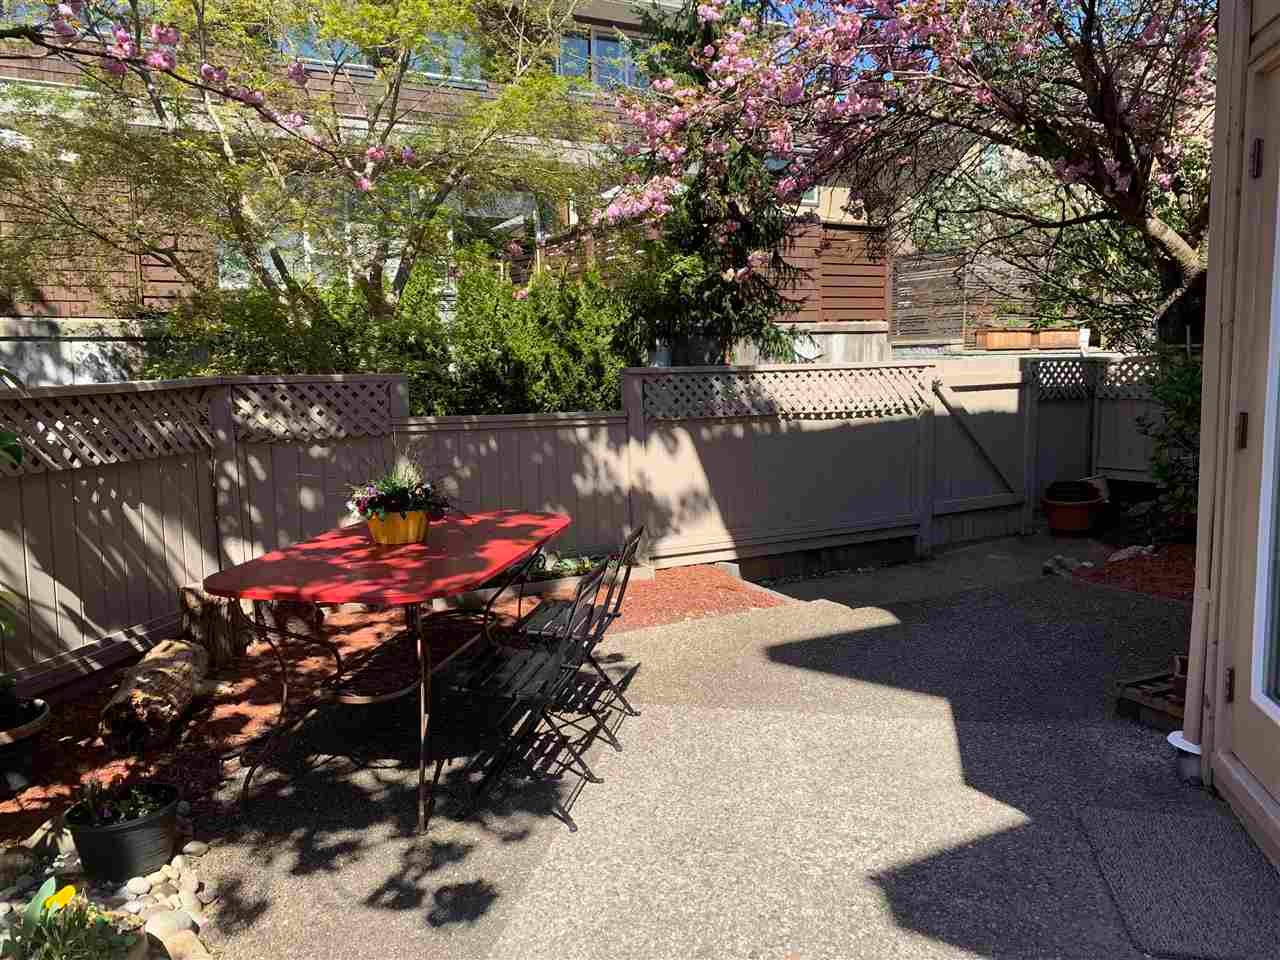 2 230 W 15TH STREET - Central Lonsdale Townhouse for sale, 3 Bedrooms (R2572749) - #3